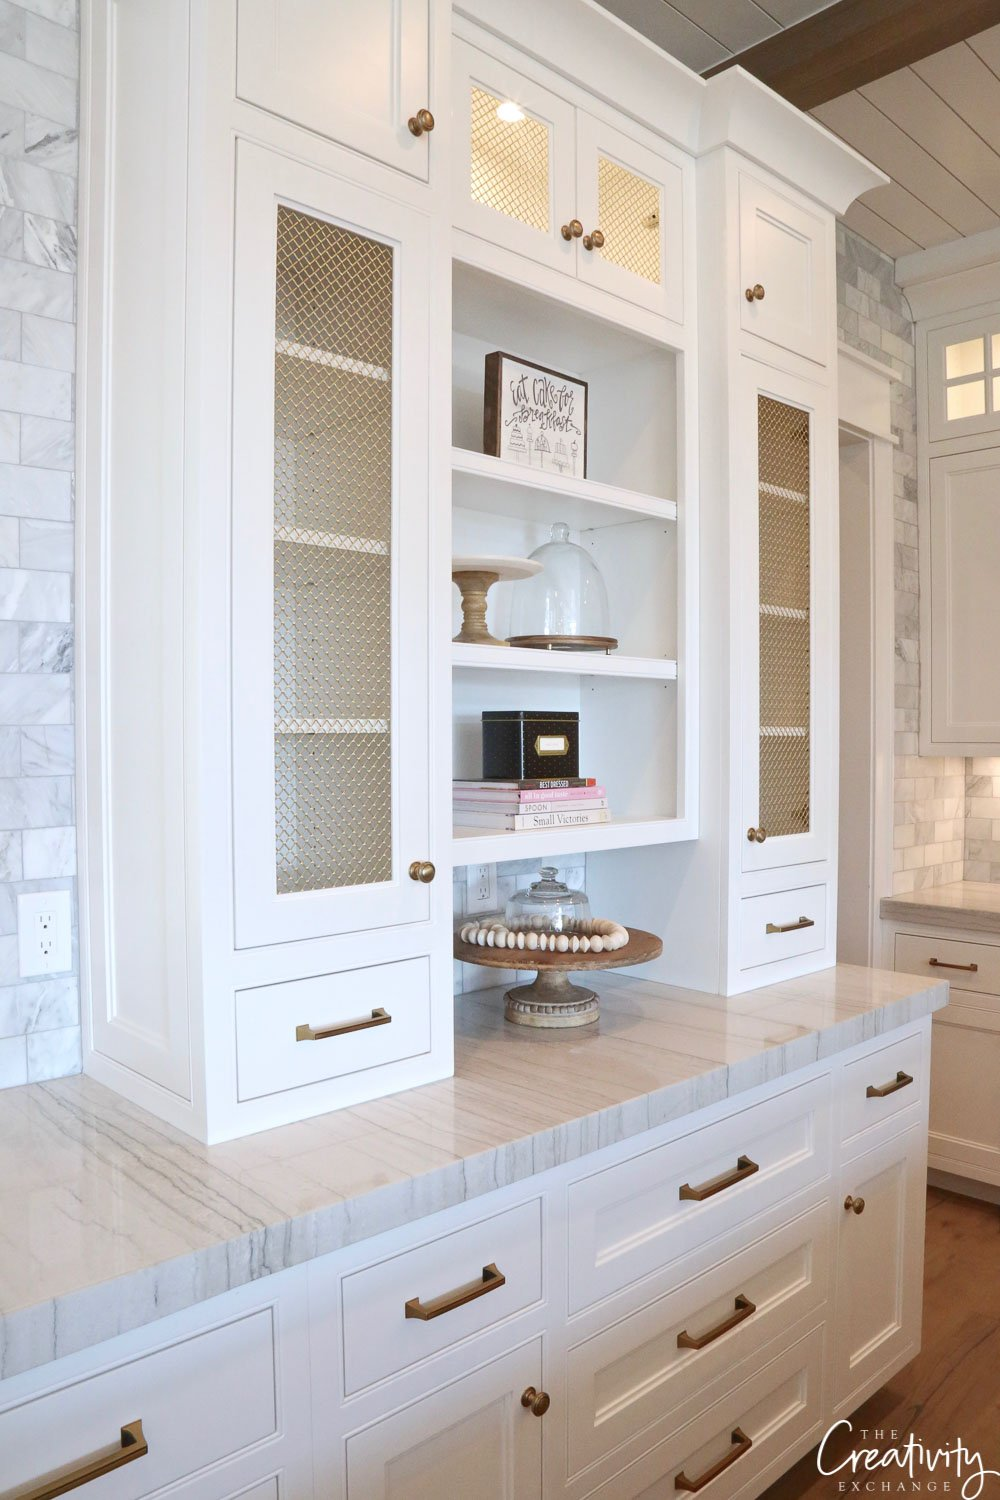 Kitchen storage and shelving for dishware